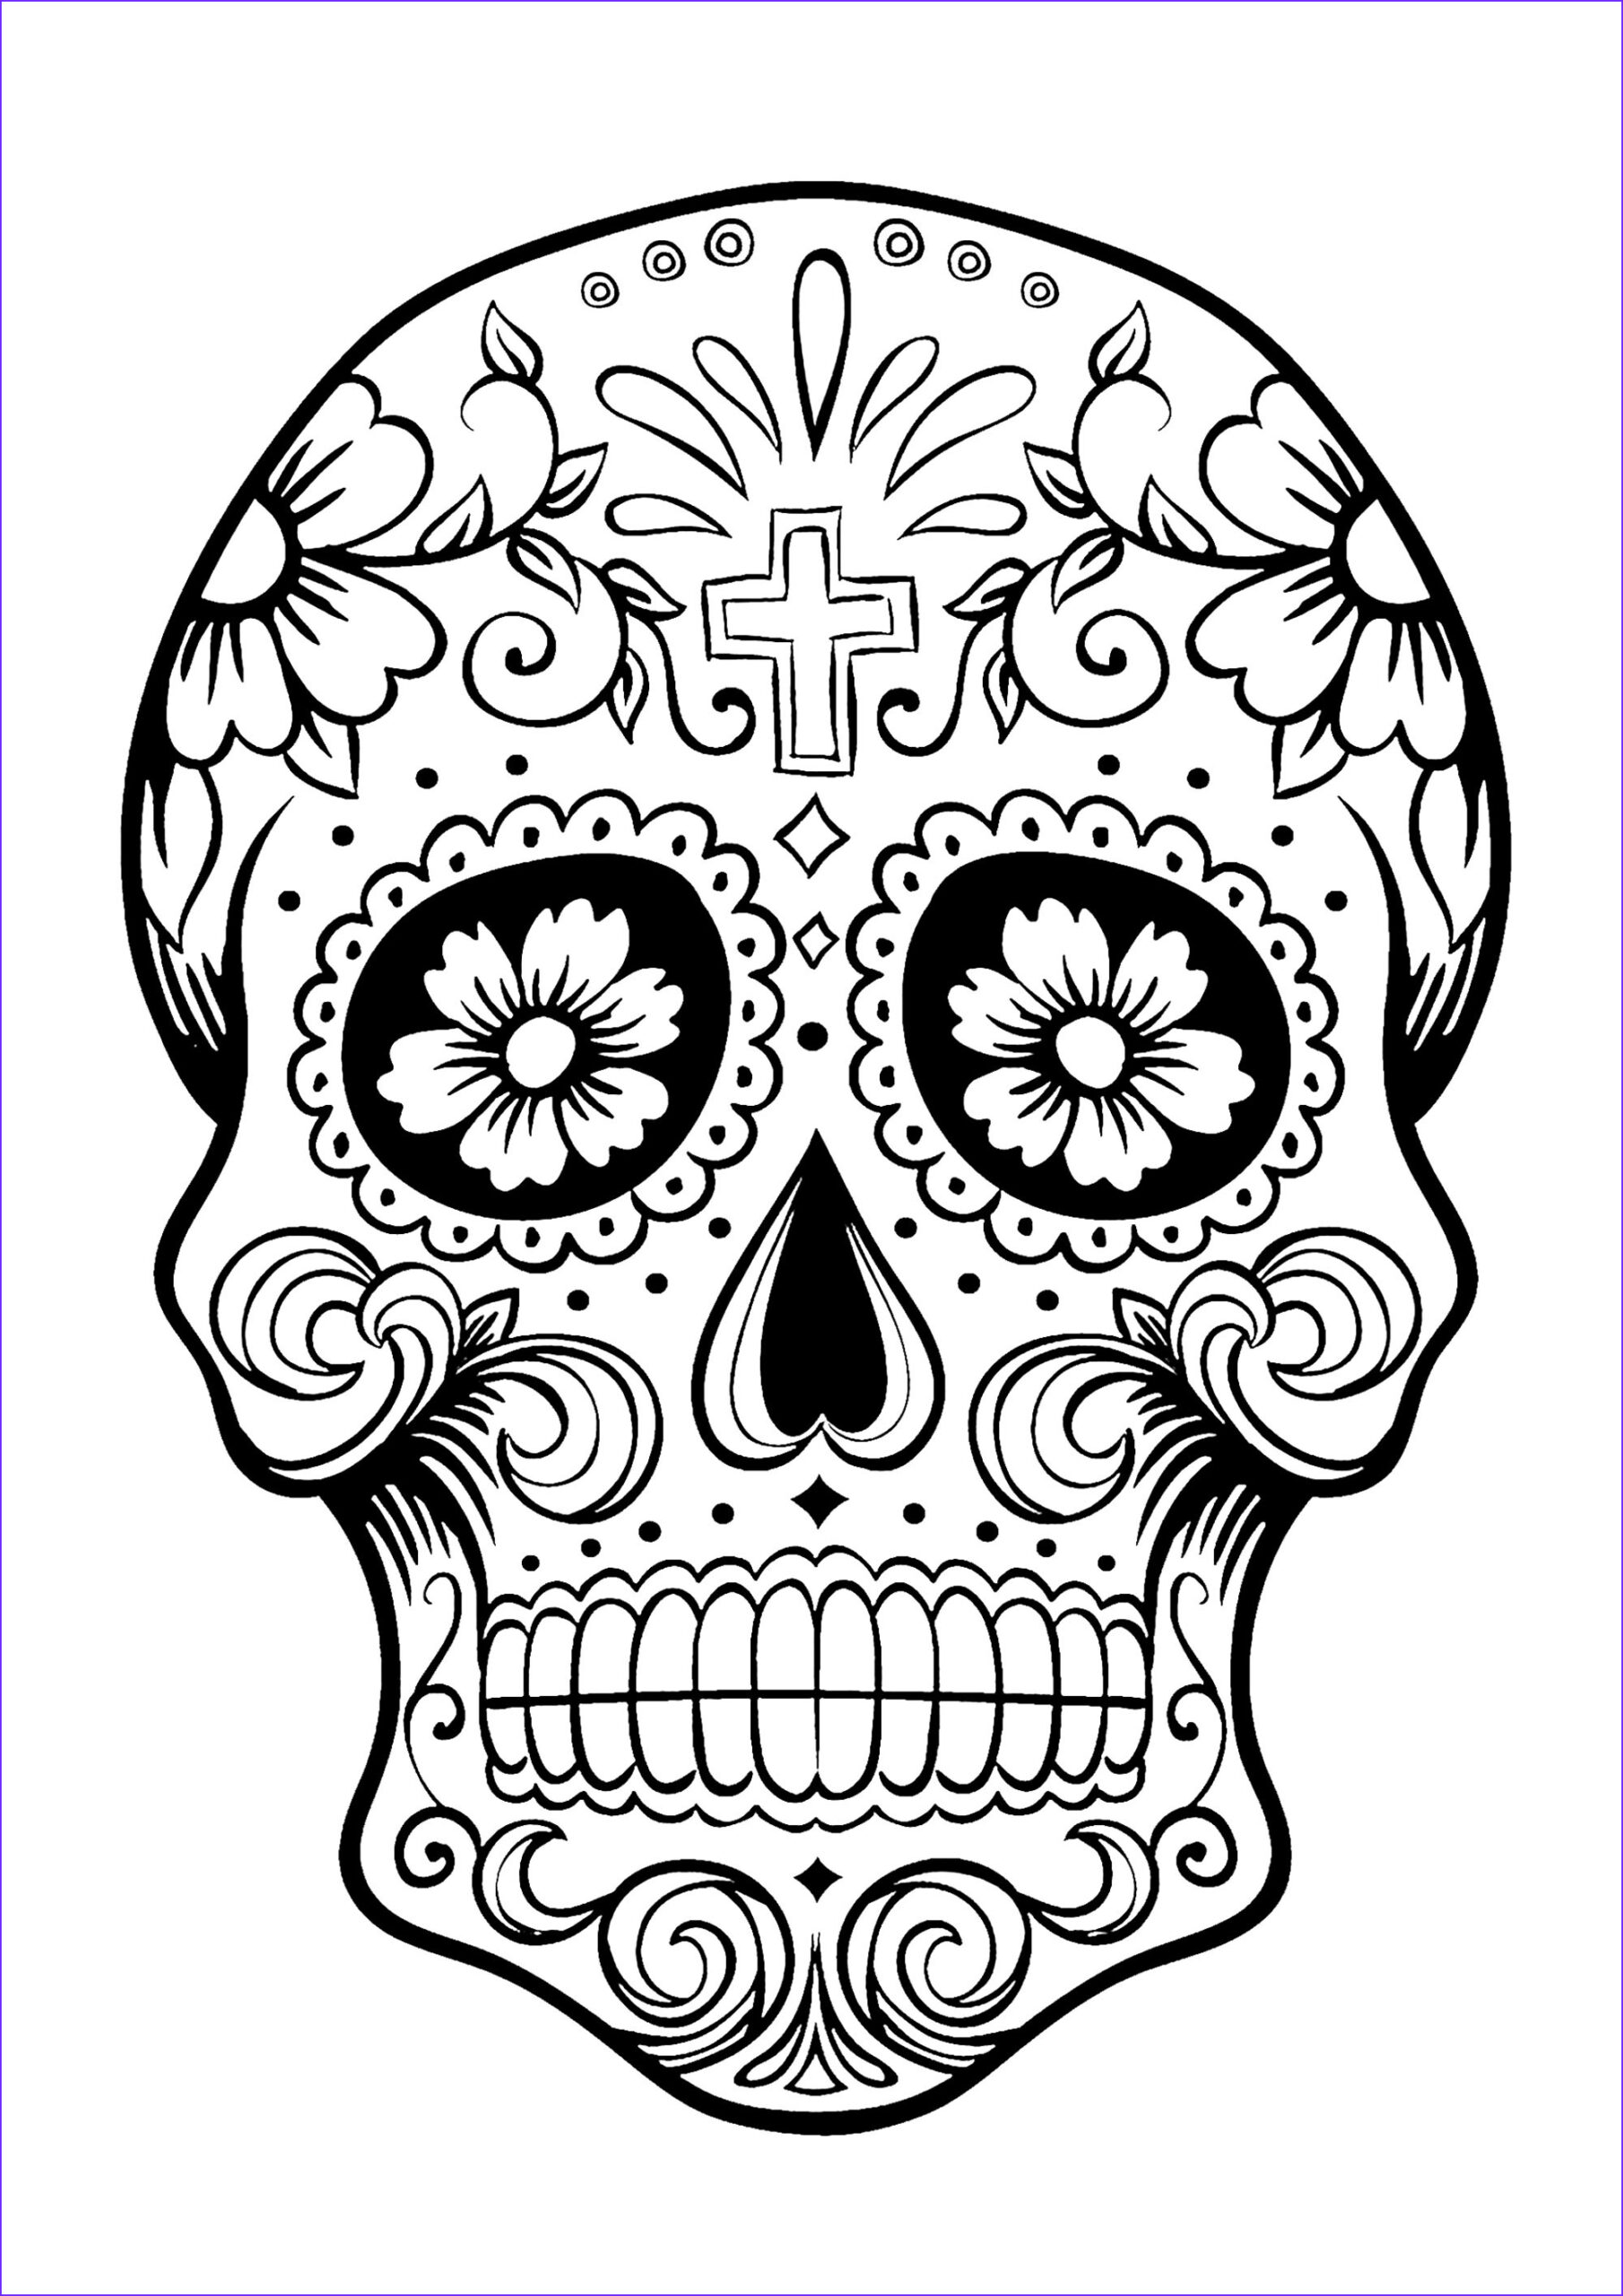 Dia De Los Muertos Coloring Awesome Photography Skull Coloring Pages for Adults